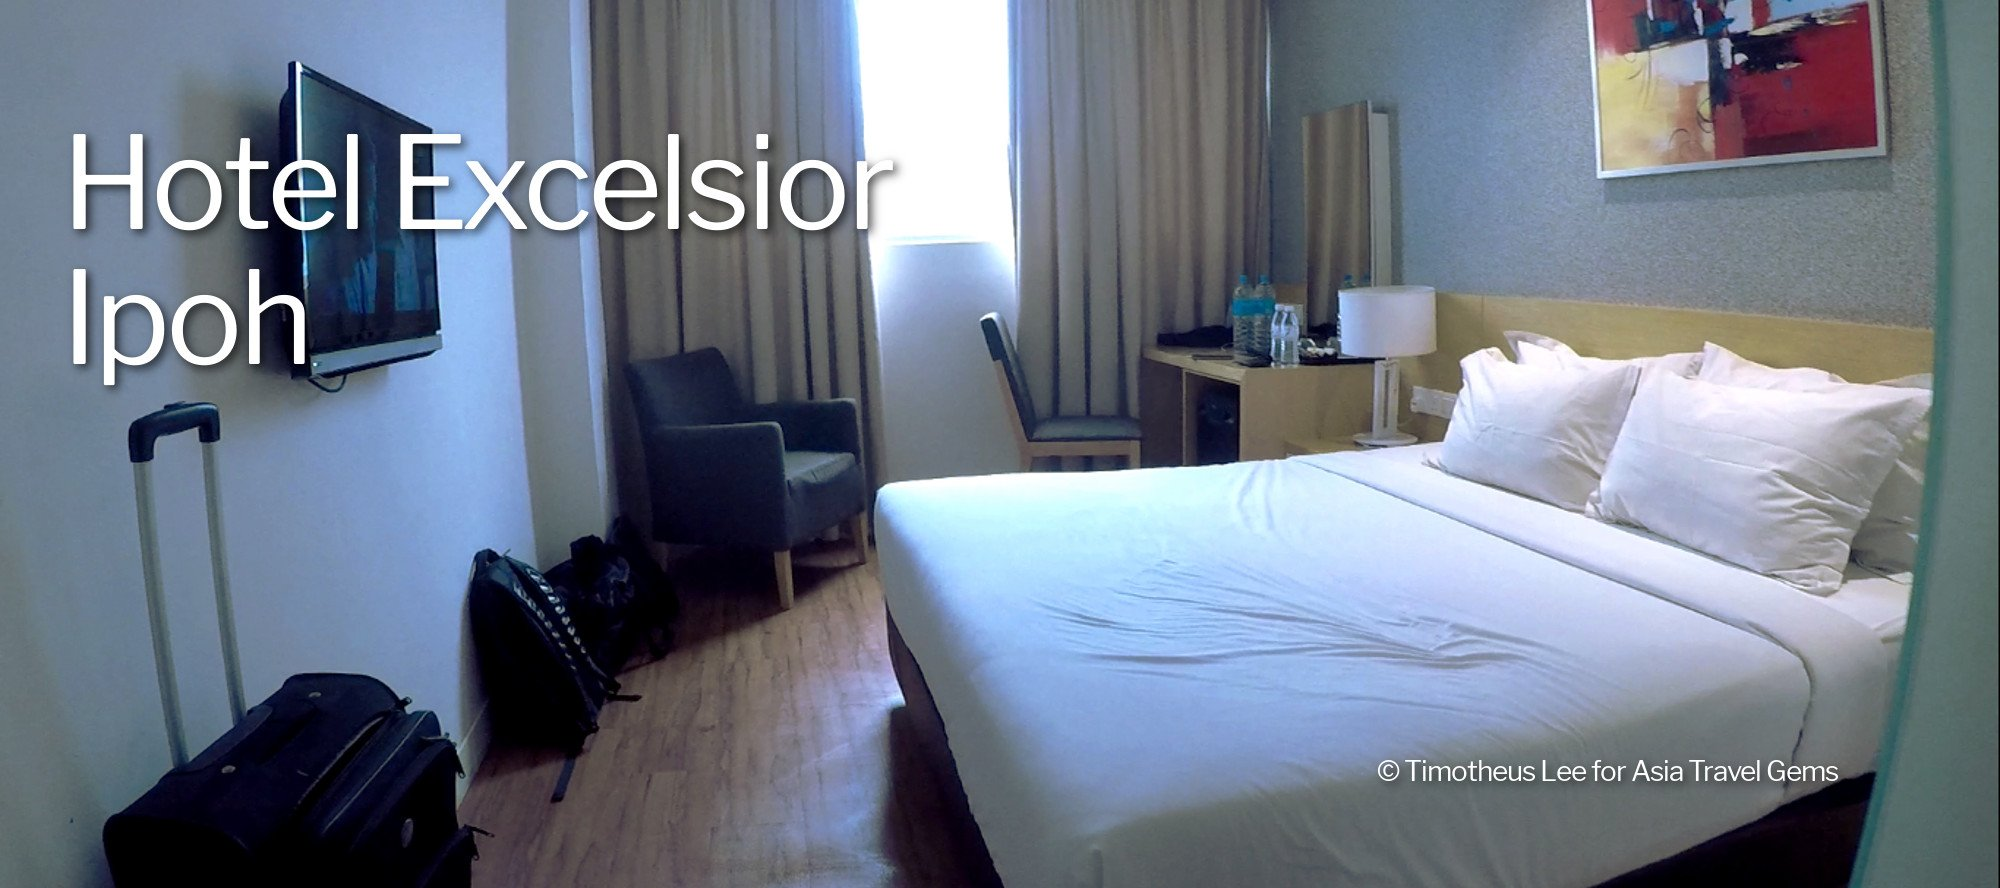 Ipoh Hotels Review - Hotel Excelsior Ipoh - header